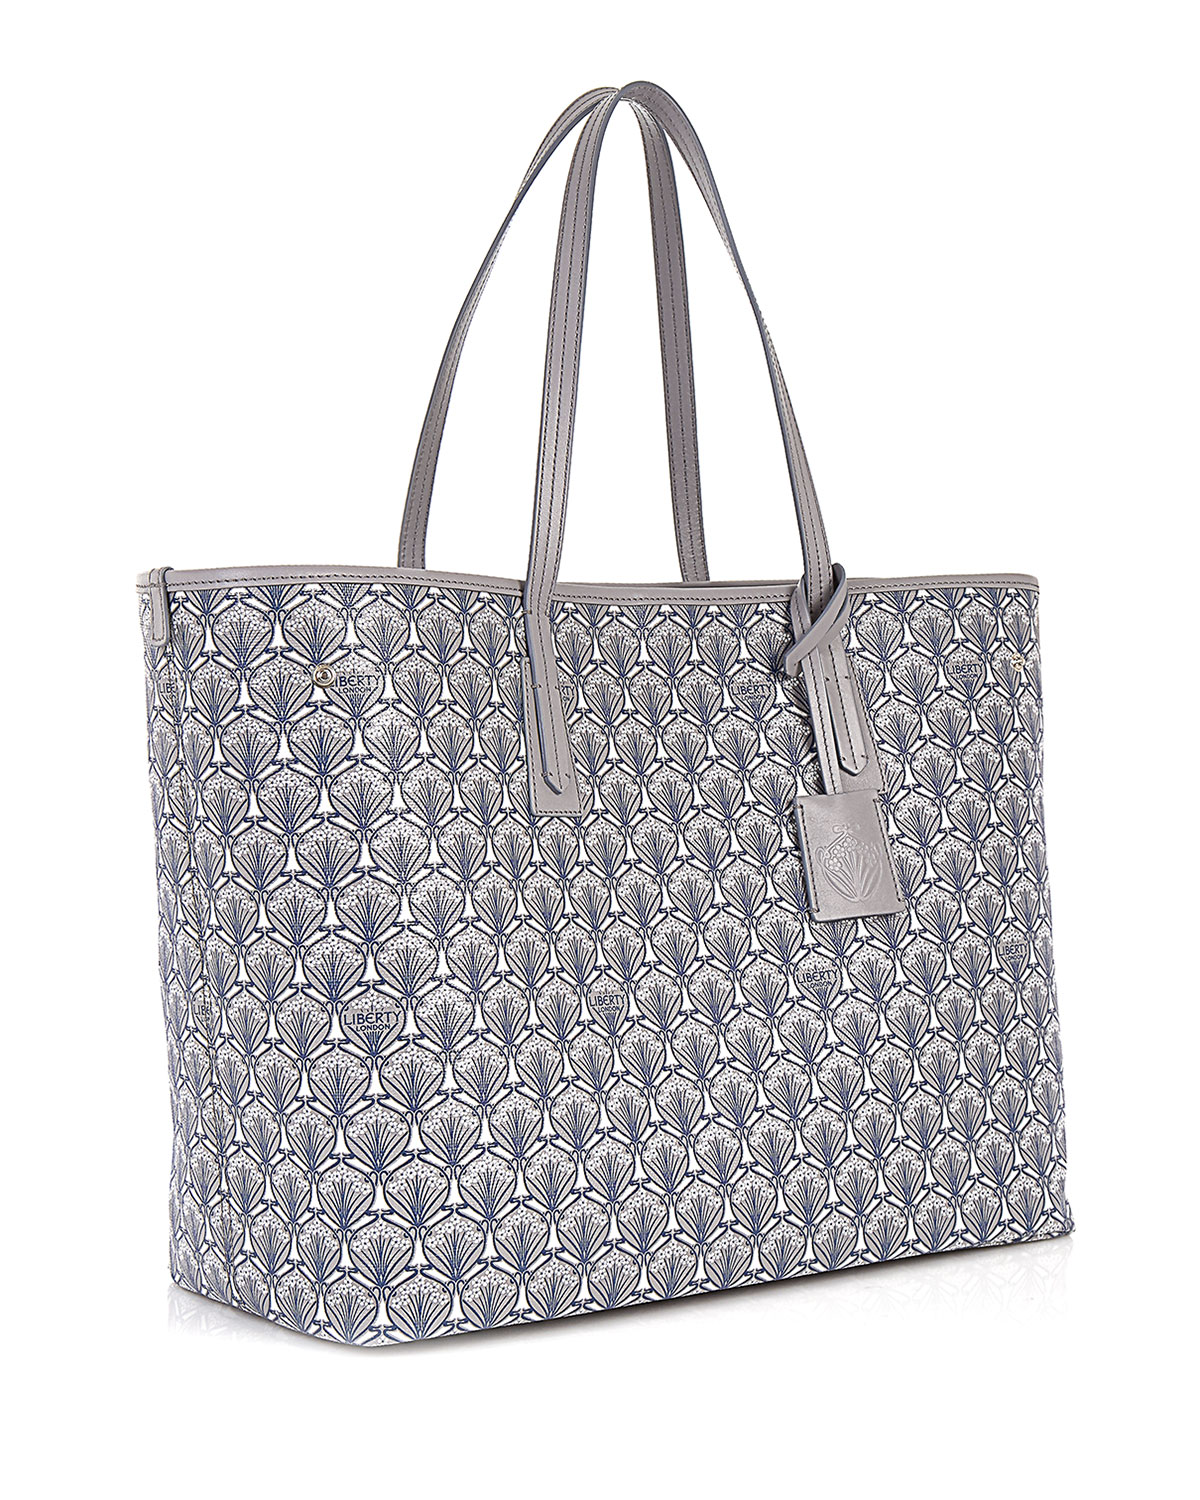 1e749294c Liberty London Marlborough Iphis-Print Tote Bag | Neiman Marcus